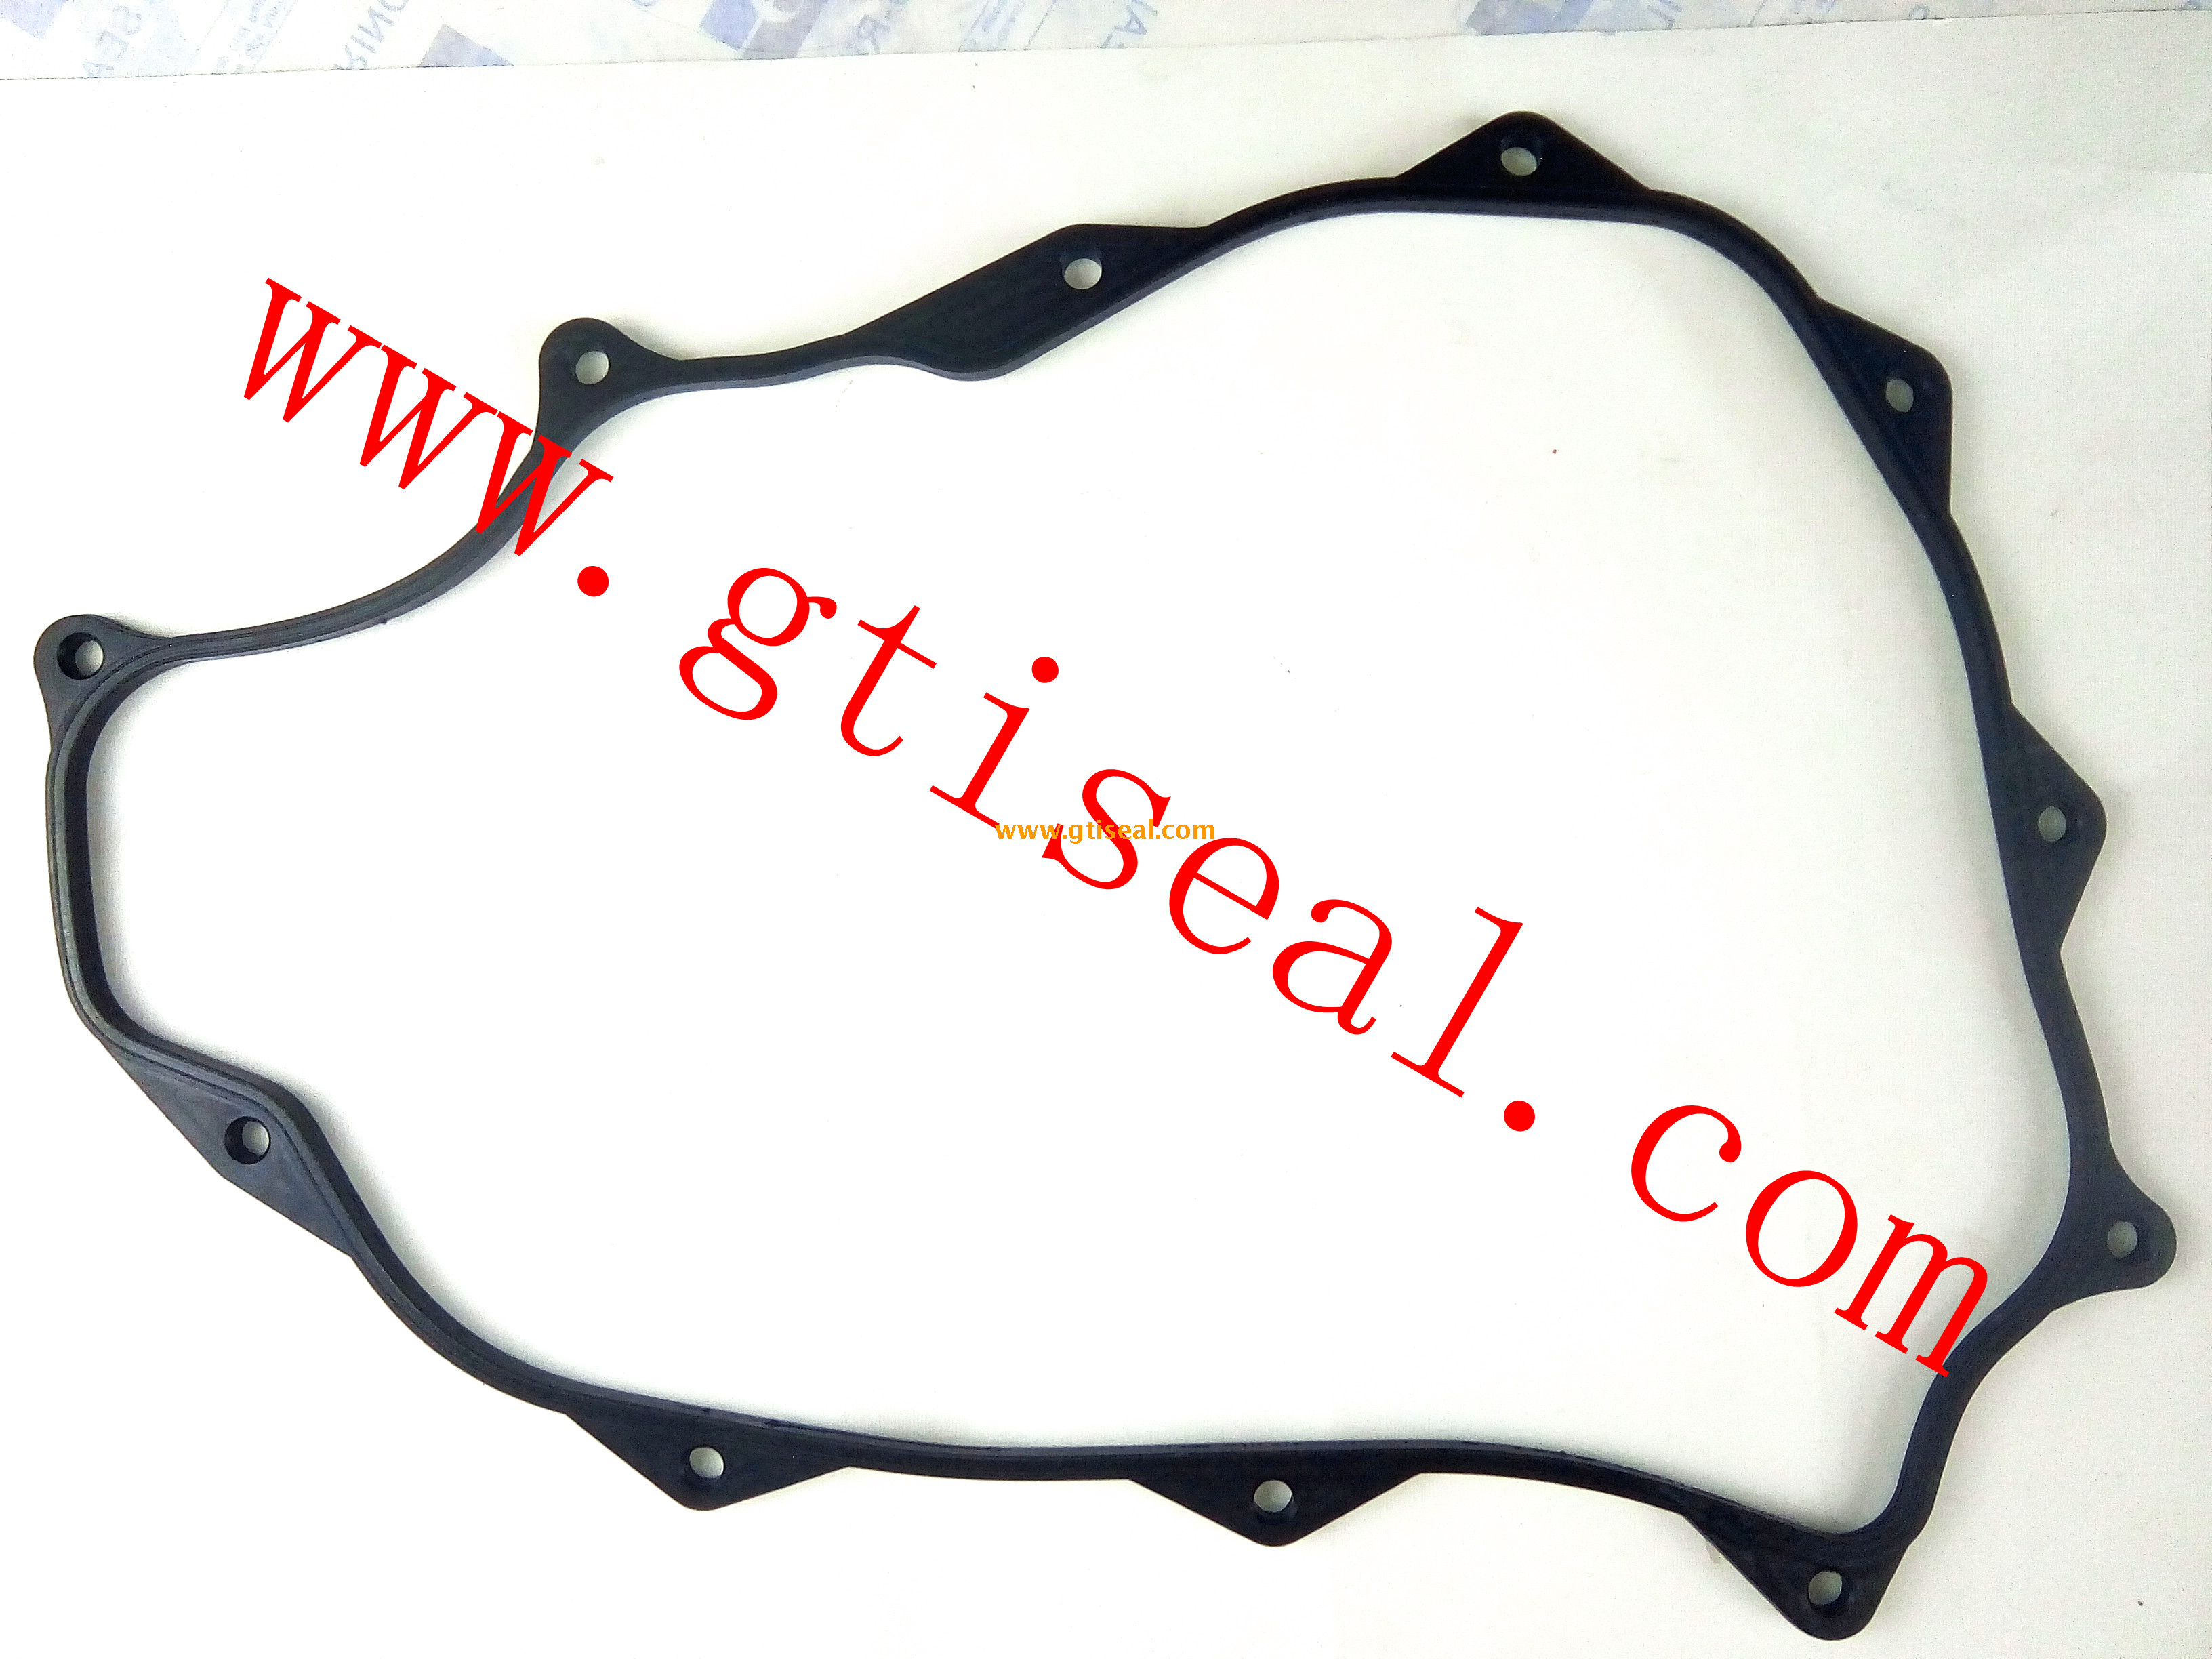 Valve Cover Gasket Replacement Cost >> For Toyota Oem 11213 97401 K3 Average Cost Valve Cover